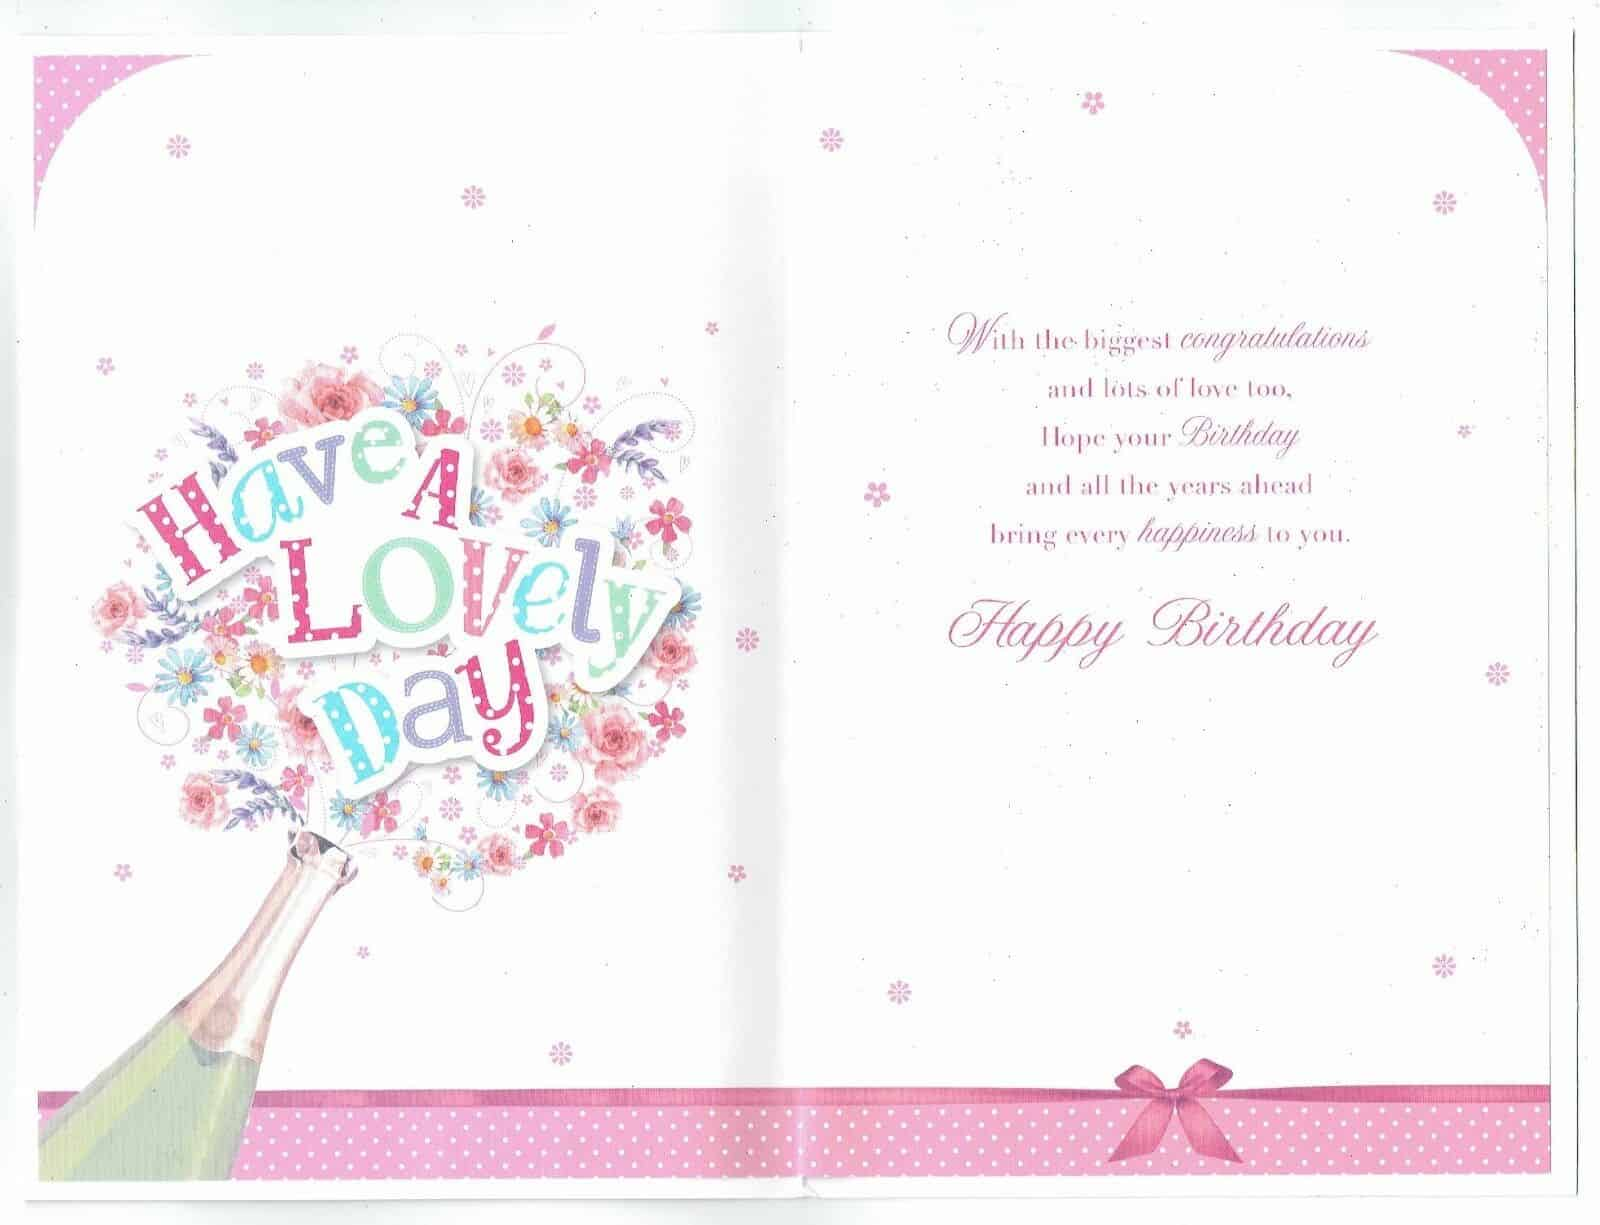 Daughter Birthday Card 21st With Champagne Theme To